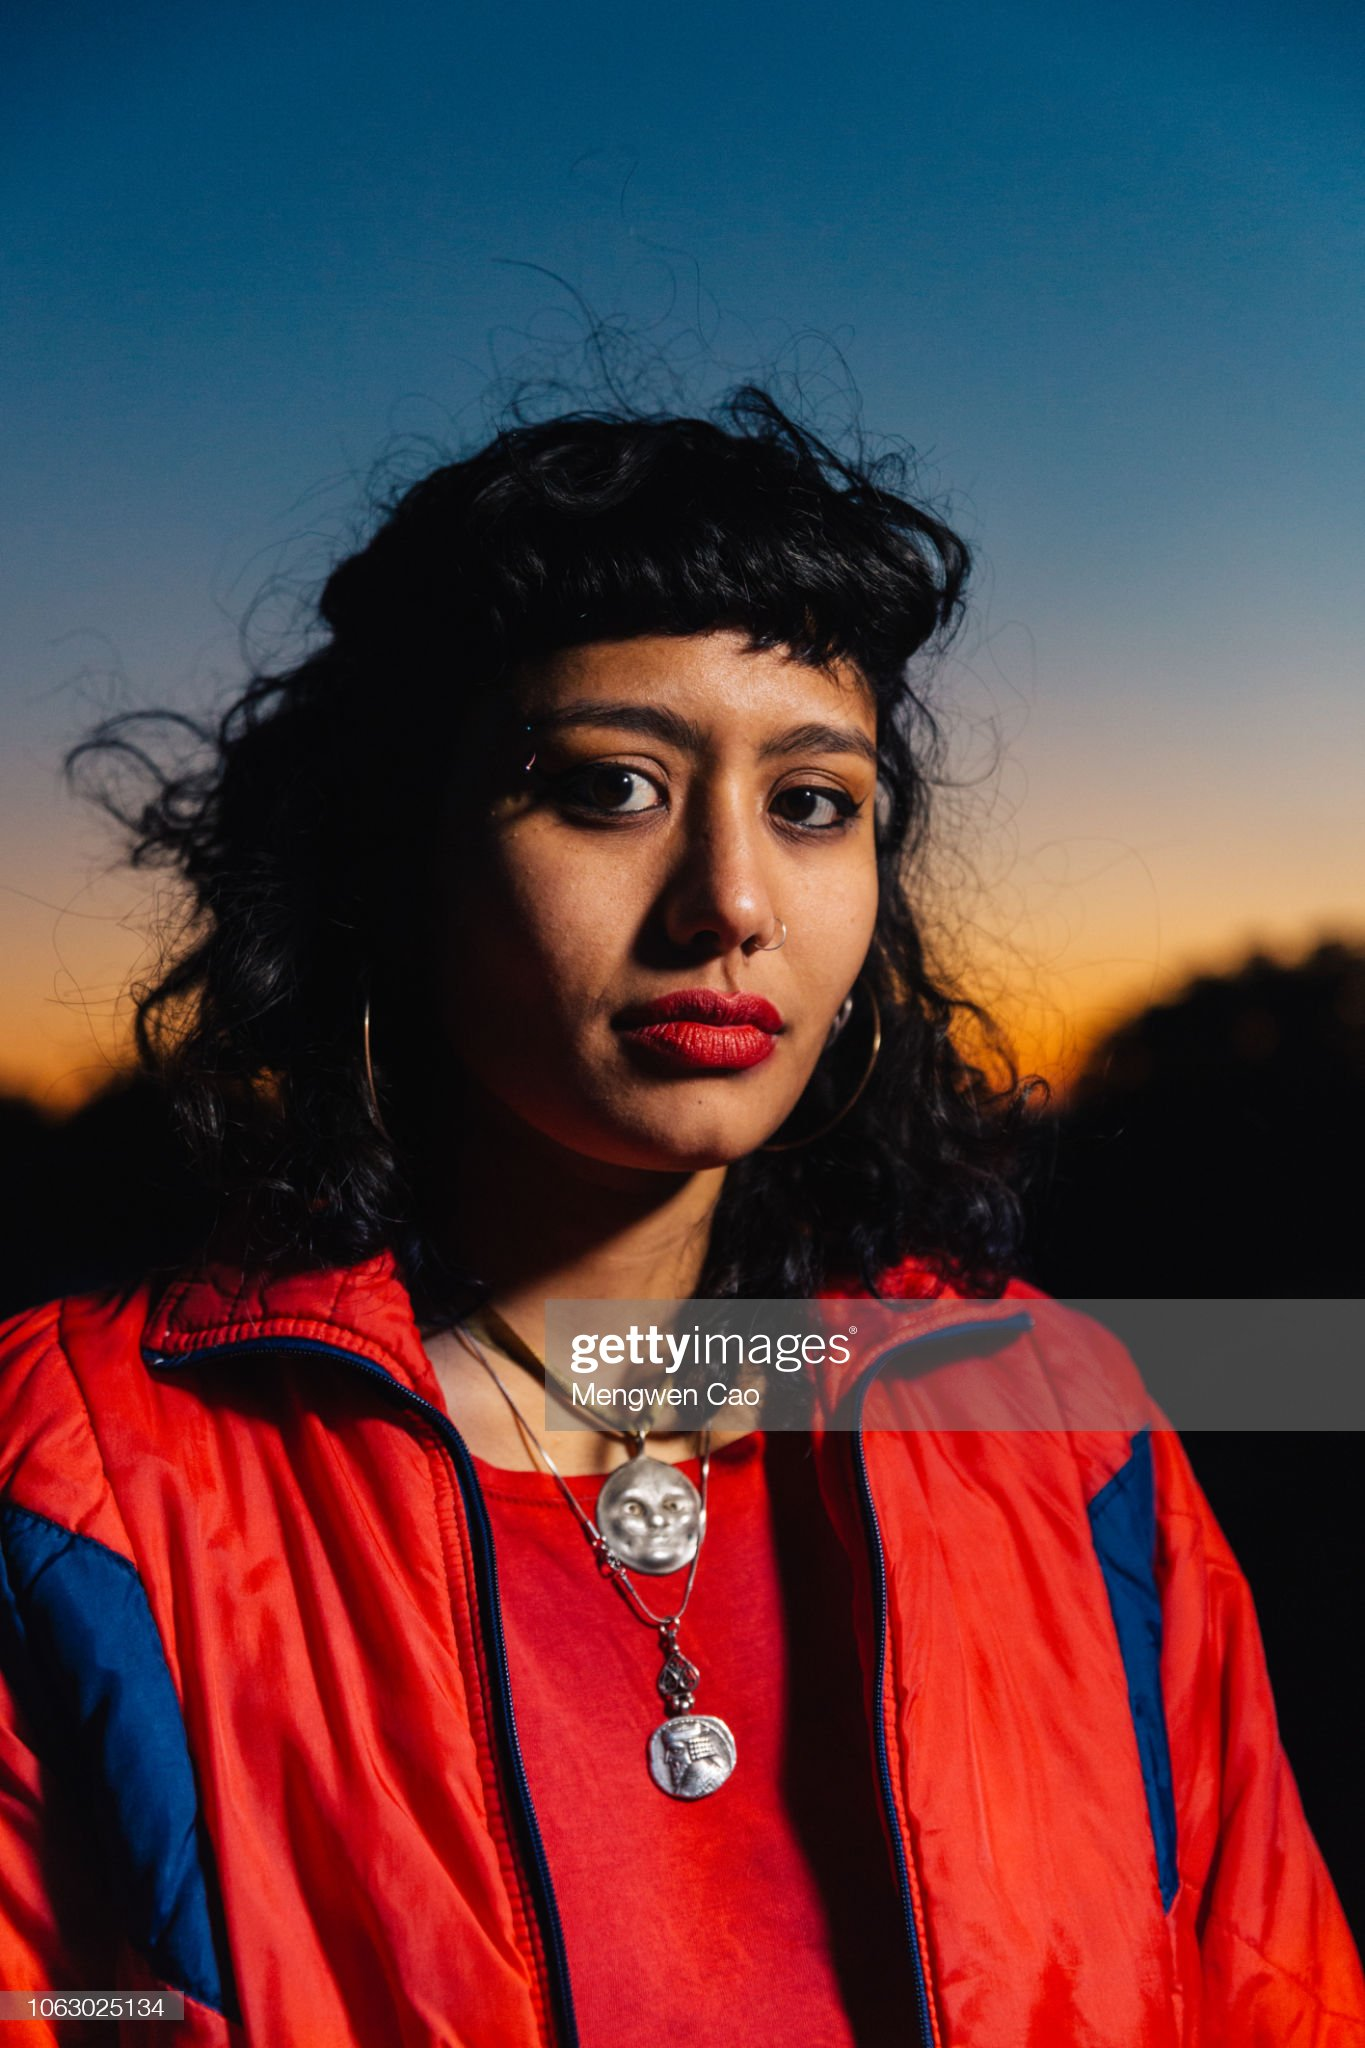 portrait of young woman on rooftop at sunset : Stock Photo